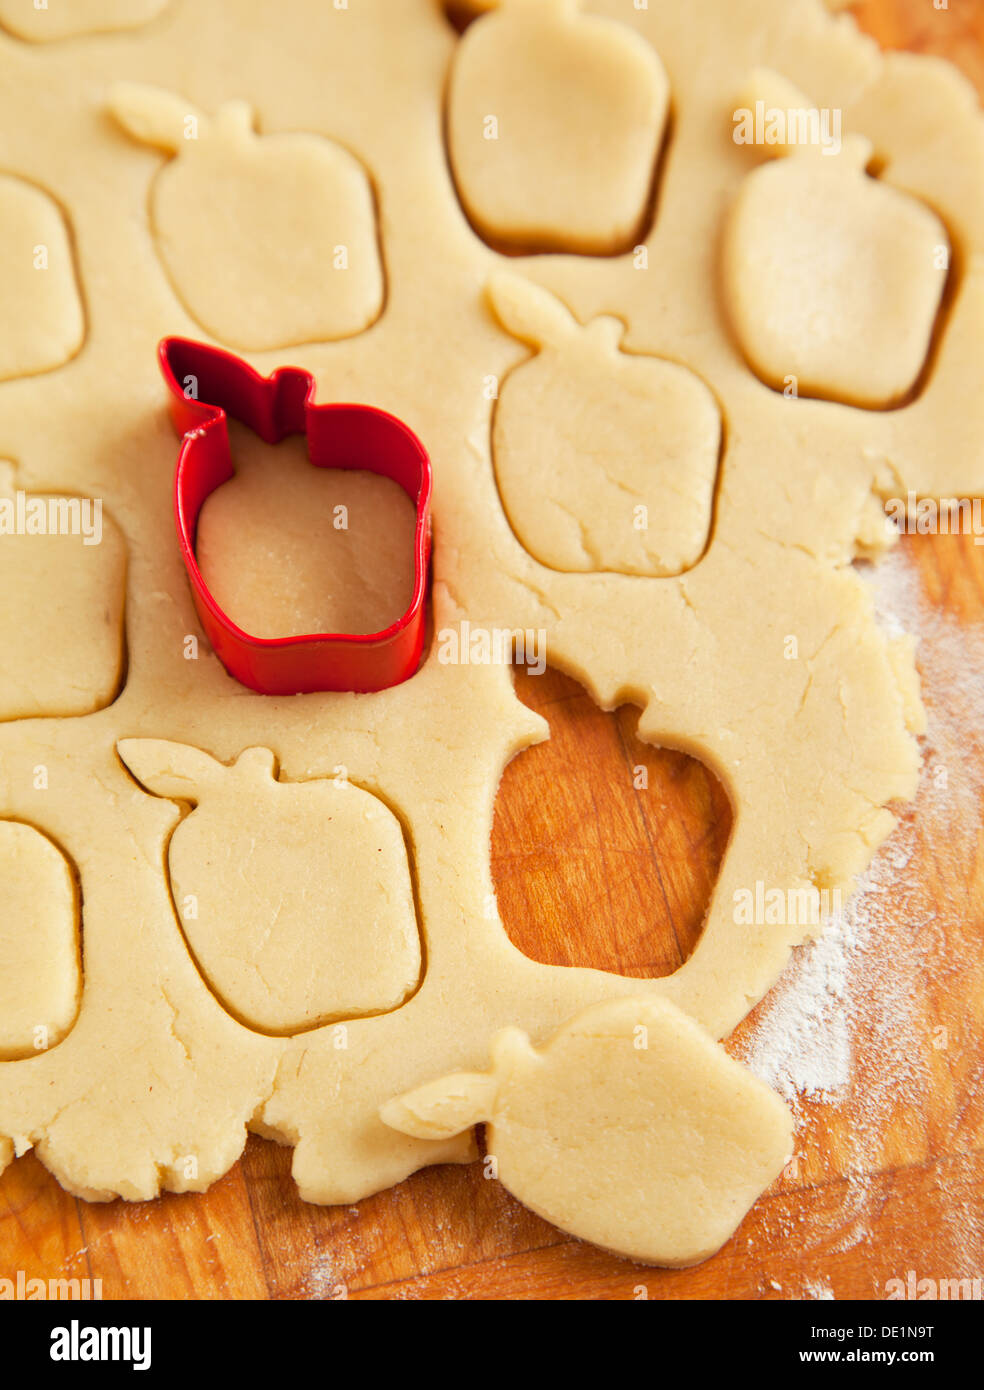 Apple Shaped Cookie Cutter On Raw Cookie Dough Stock Photo 60274980